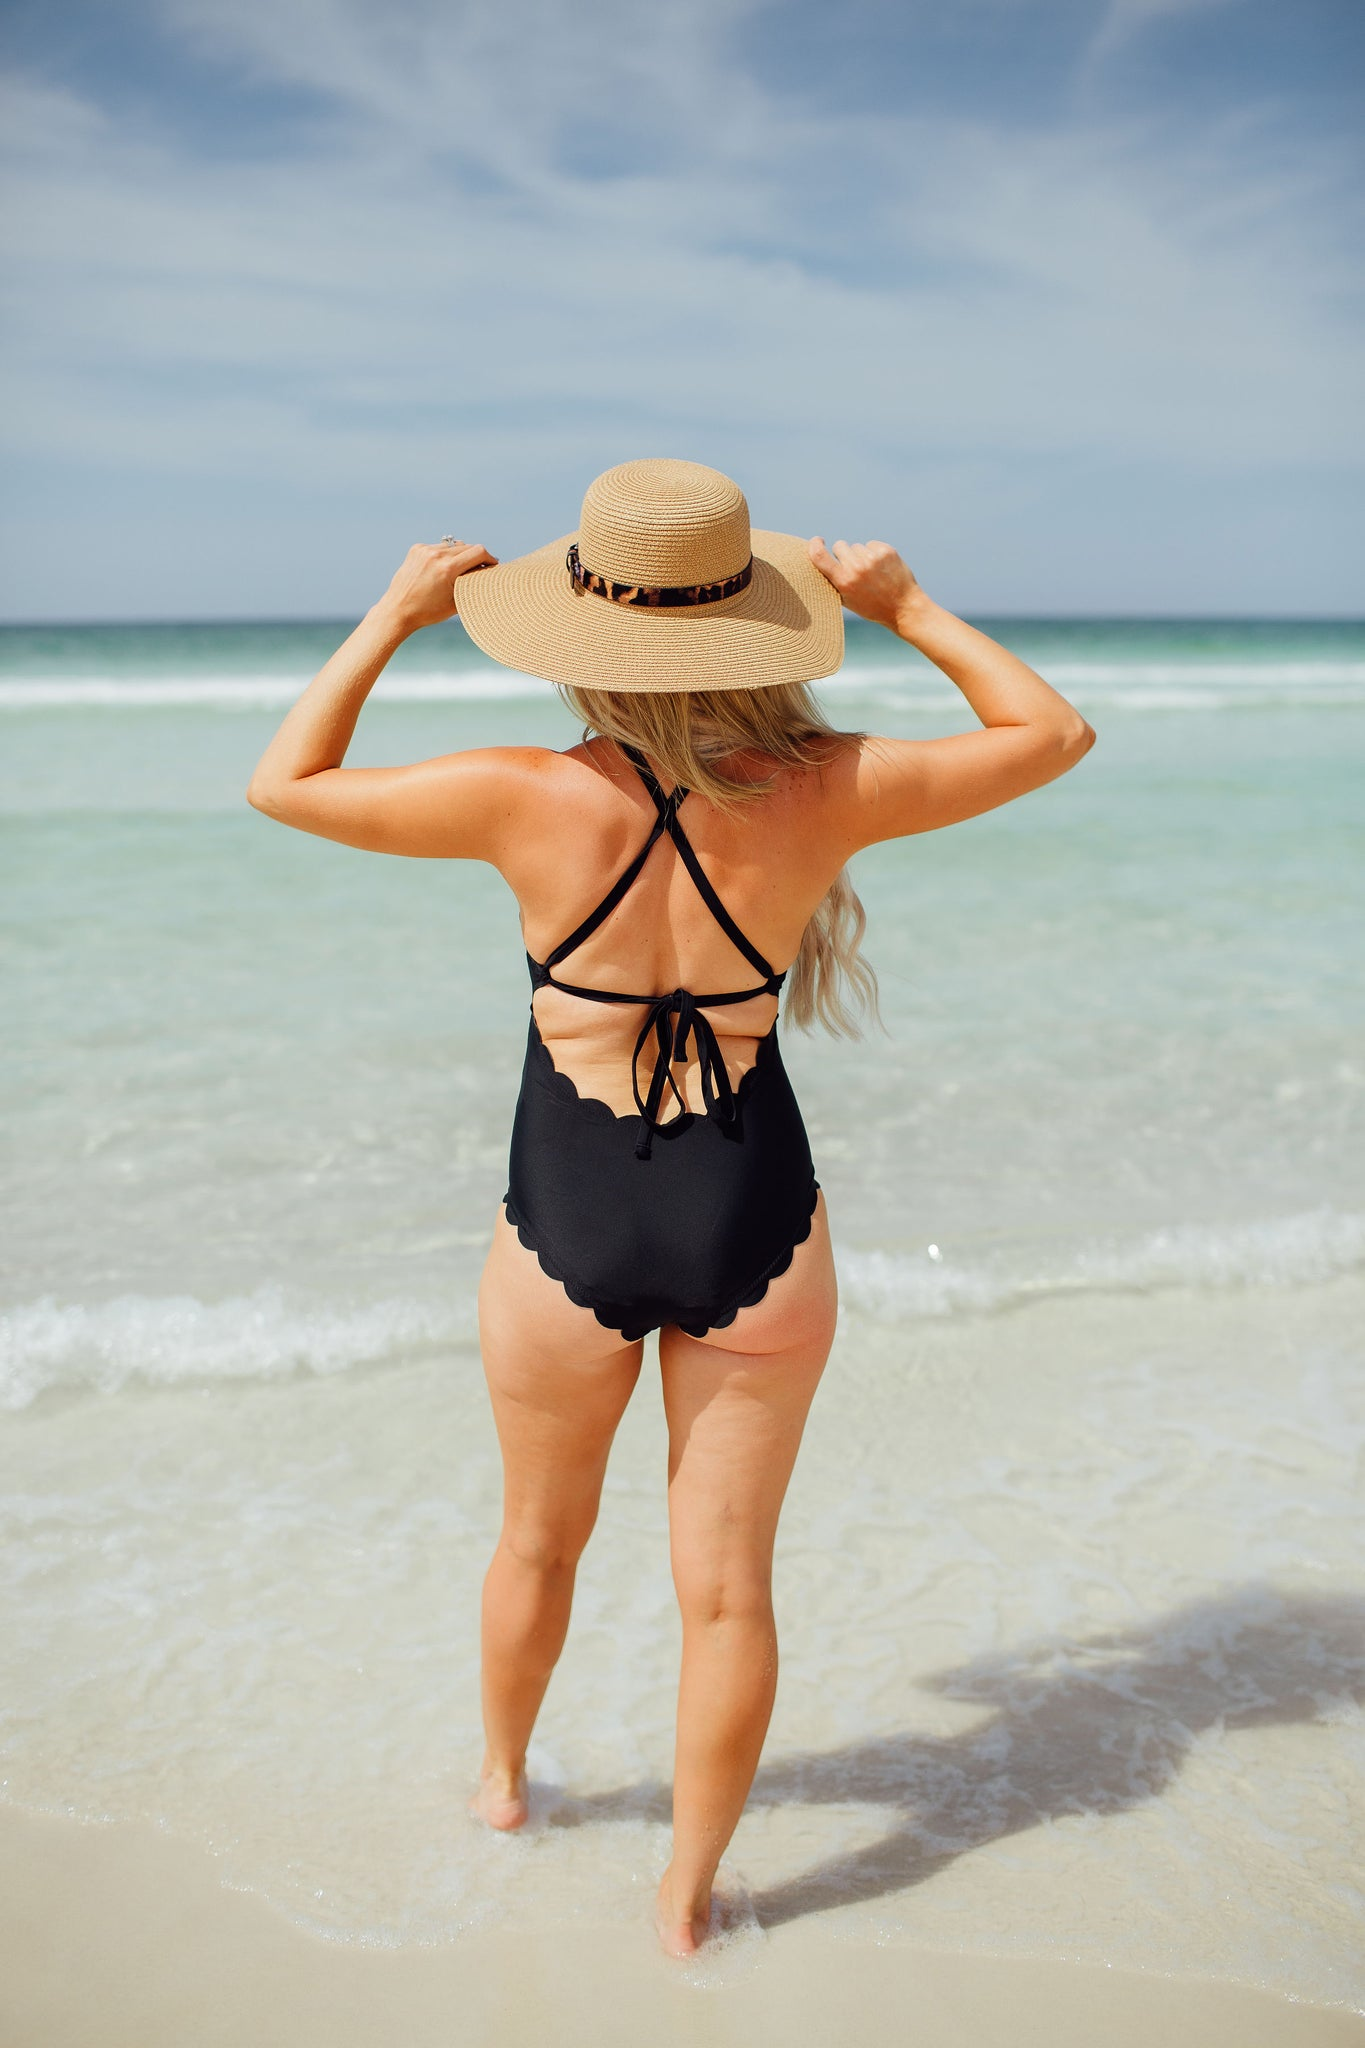 Sunset Scallop Swim Suit